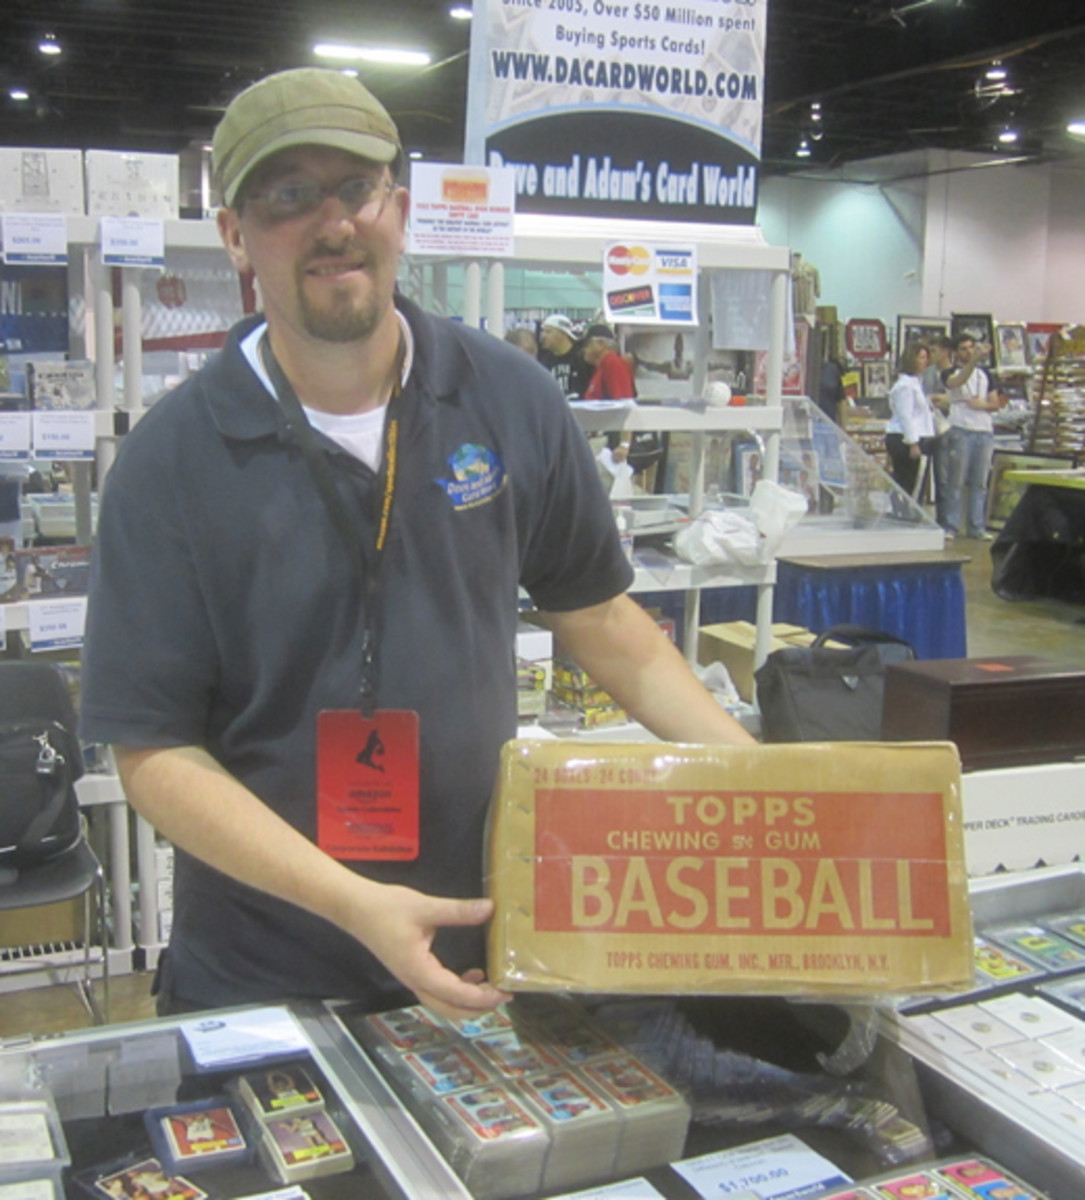 Dave and Adam's Card World displayed the empty case in which Al Rosen found the 1952 Topps high numbers in 1986.